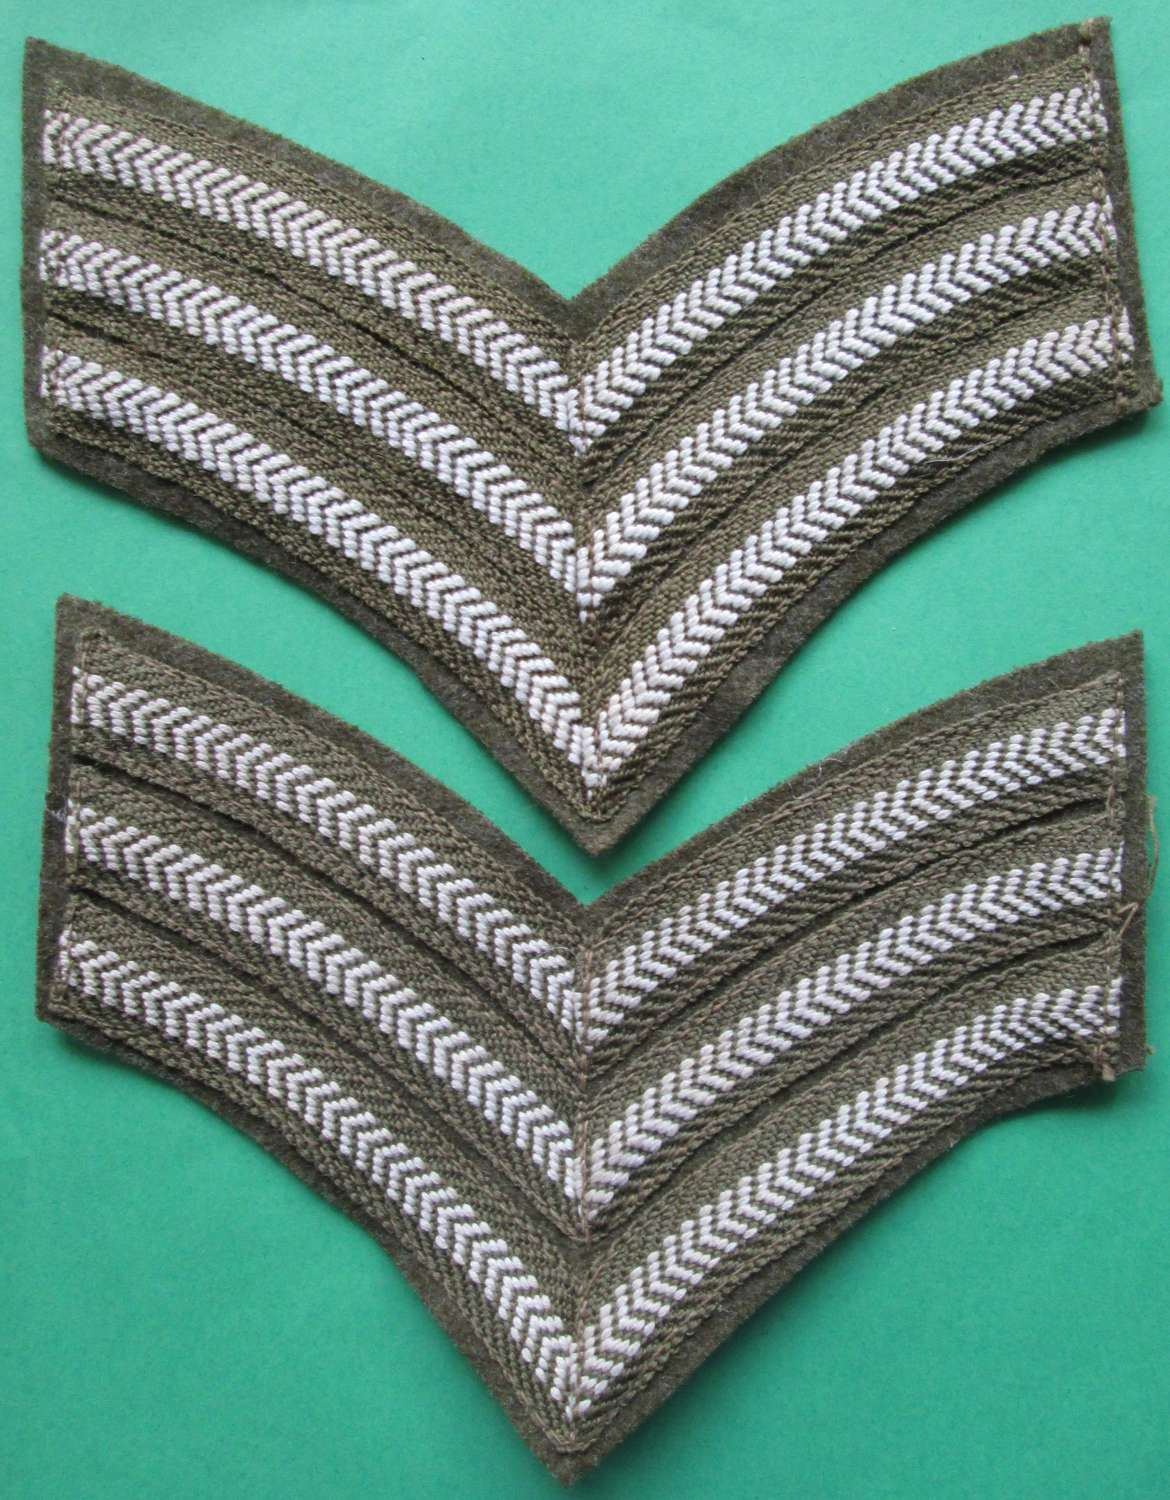 A GOOD PAIR OF WWII PERIOD ARMY SGT STRIPES